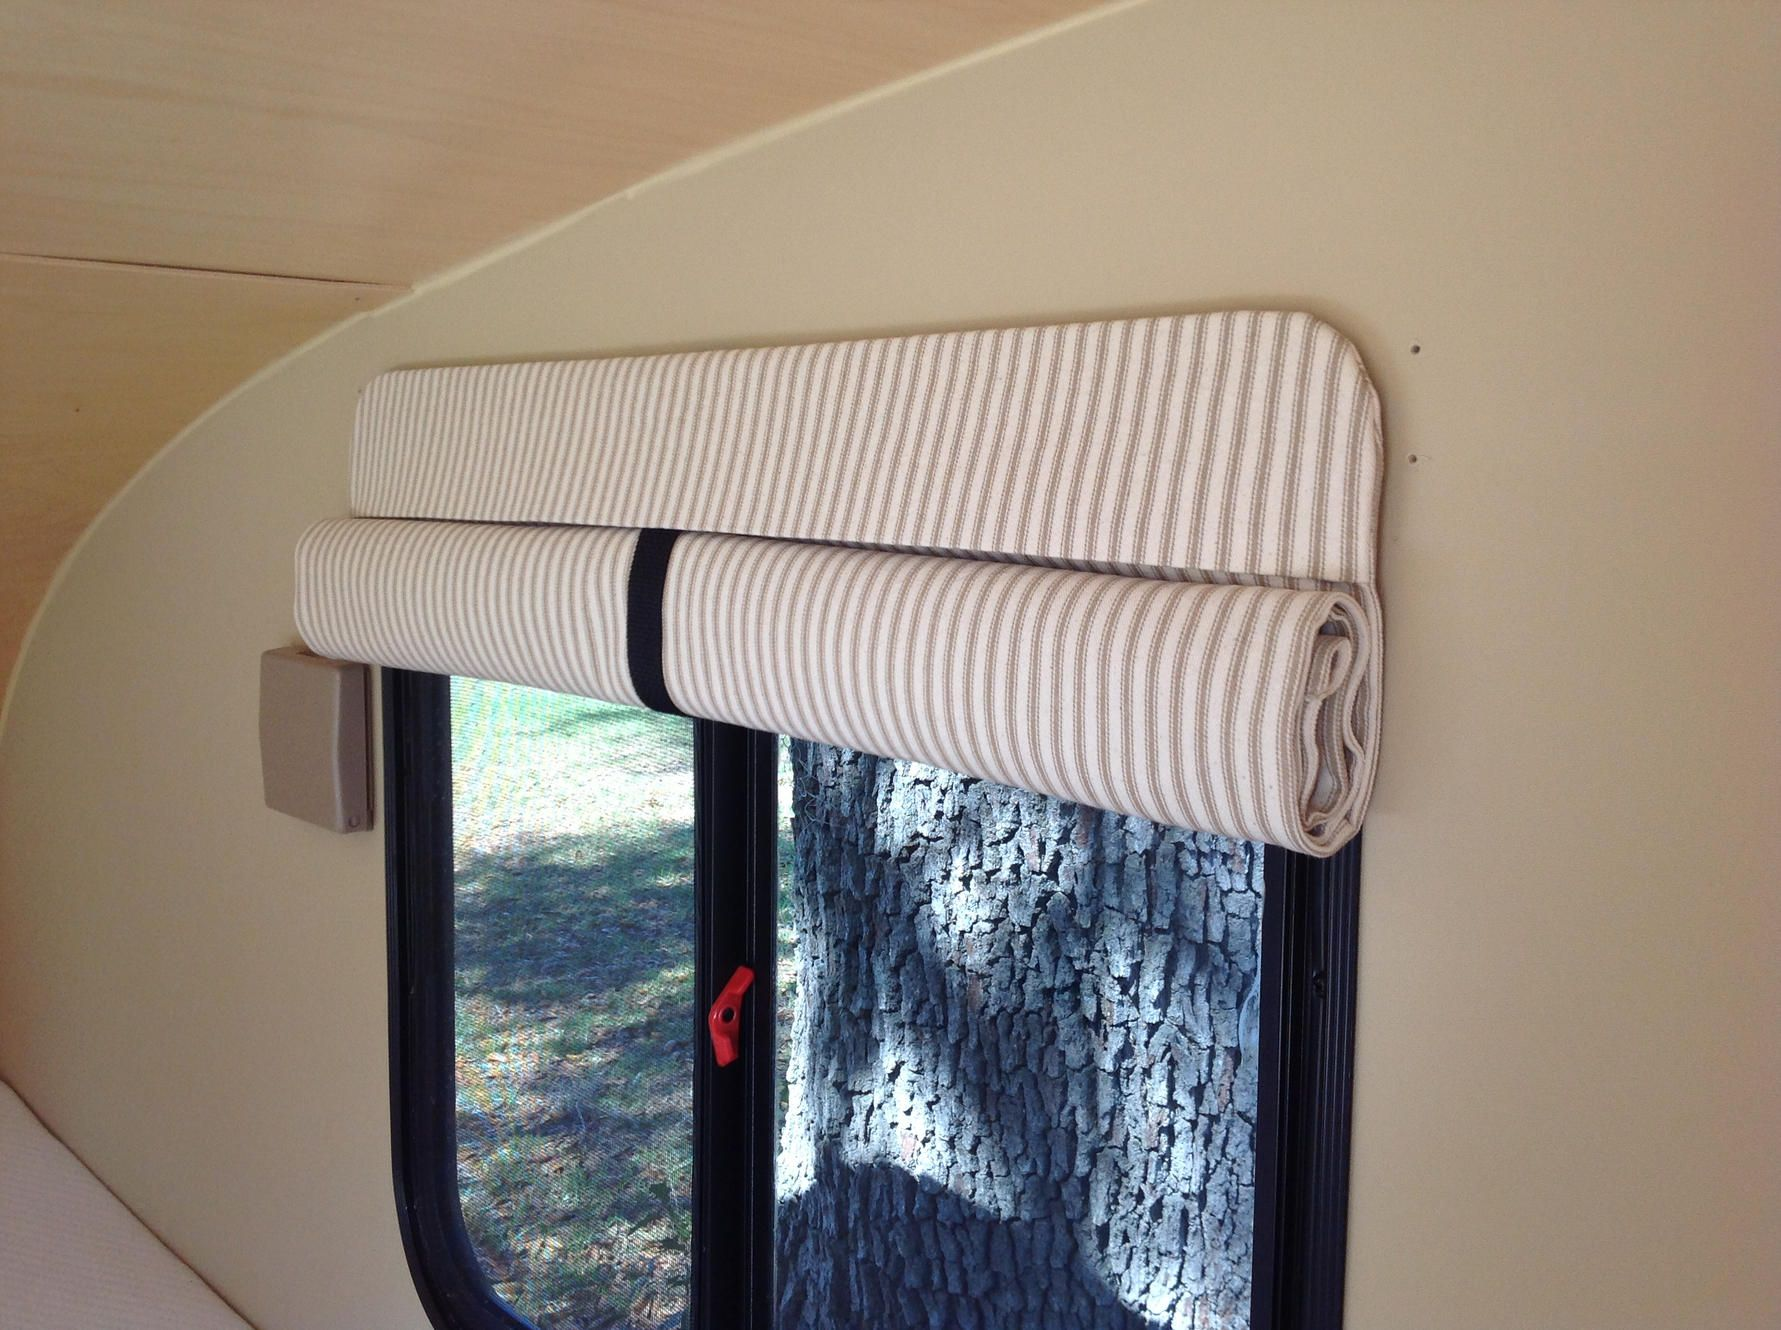 Camper curtains and camper door shades designed and made